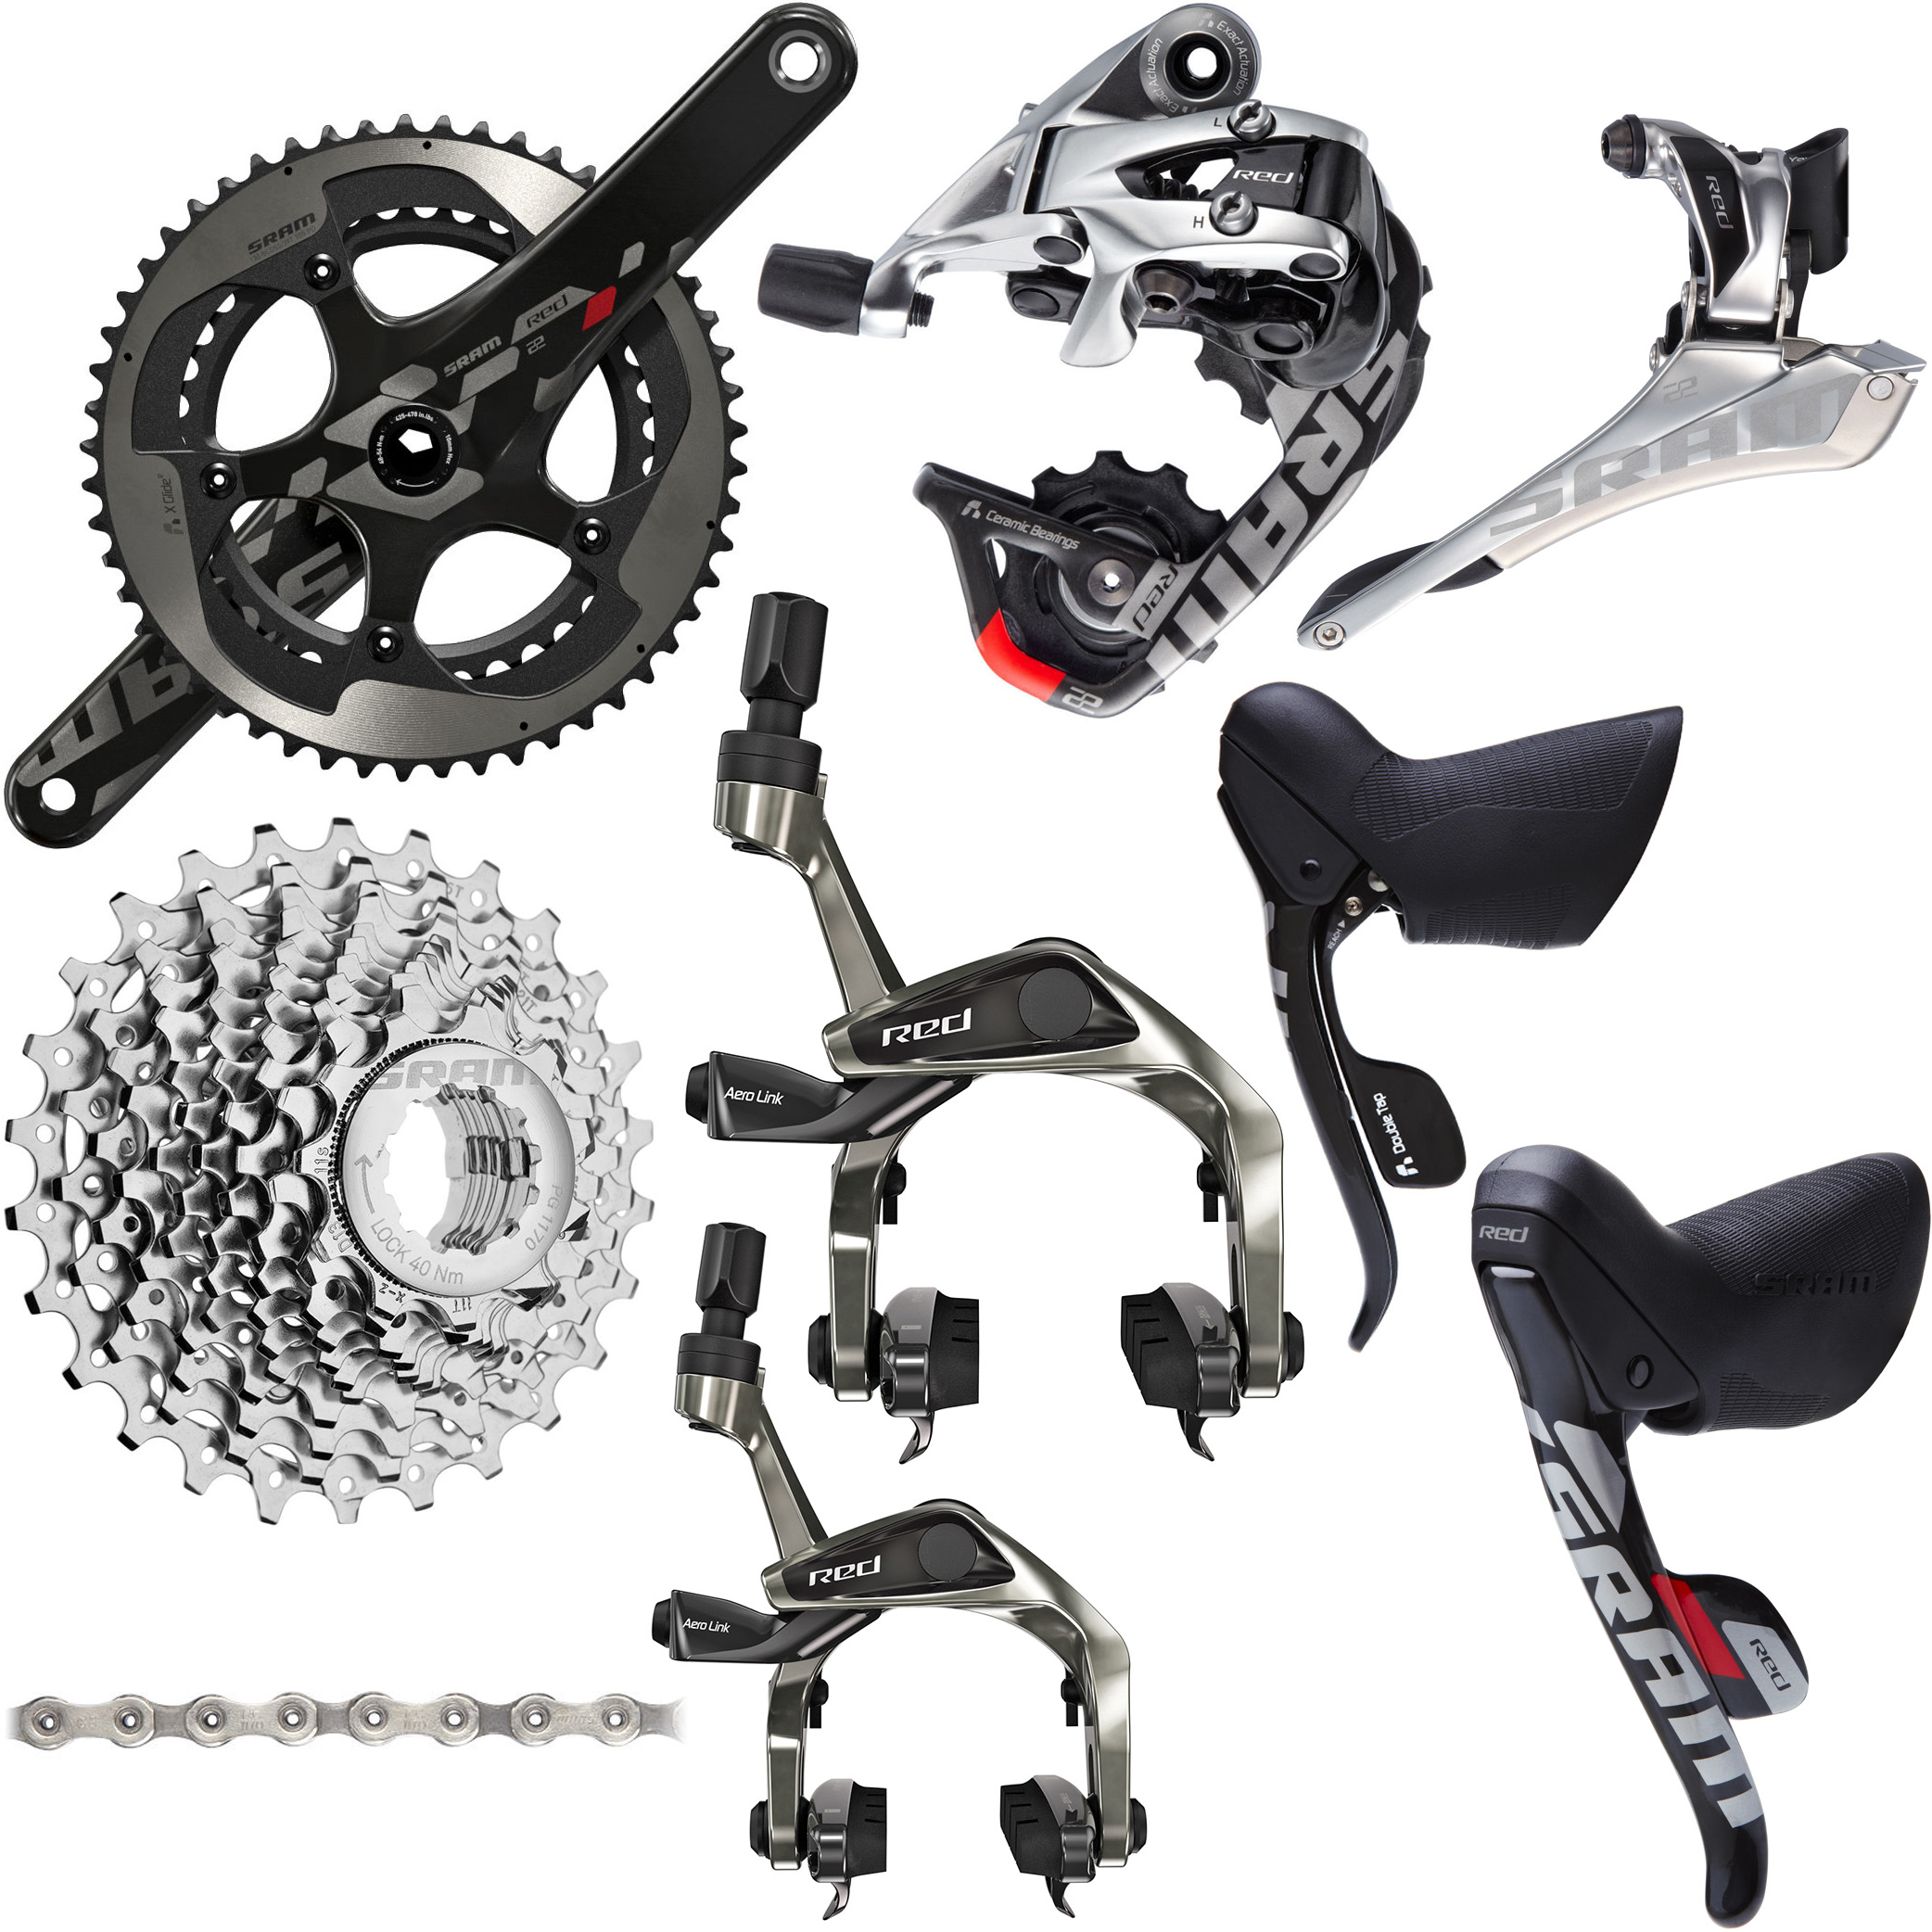 SRAM RED 22 11 Speed Groupset | Groupsets